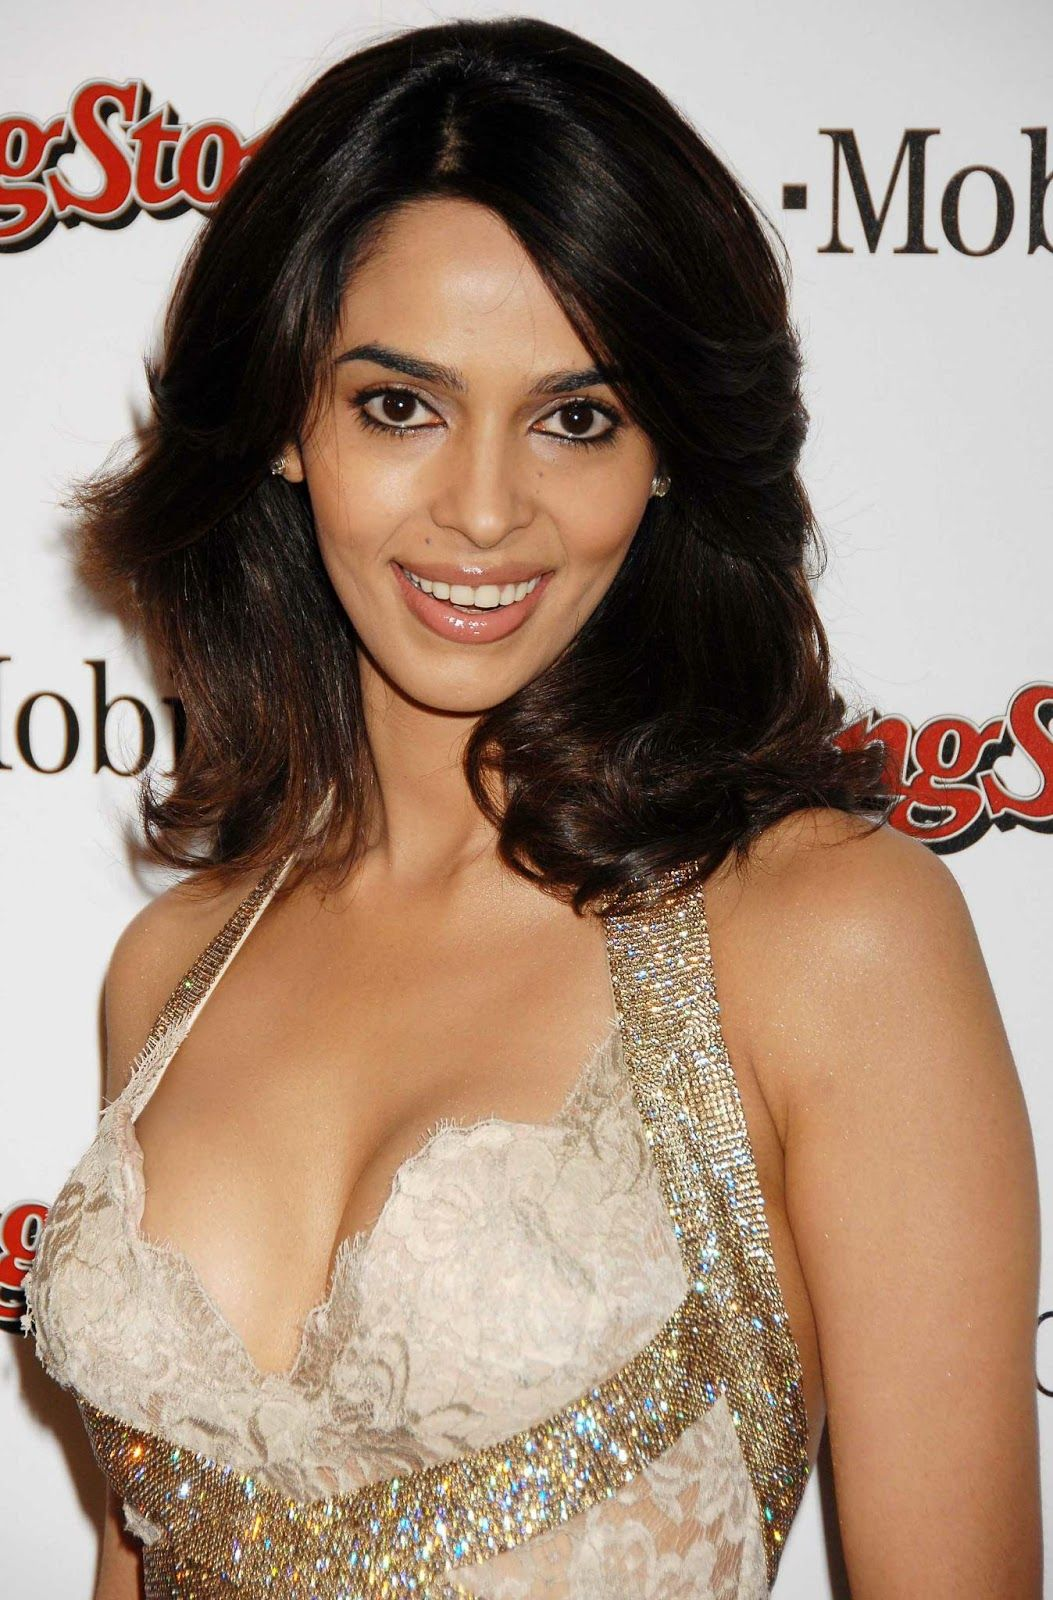 Cleavage Mallika Sherawat nudes (56 photo), Sexy